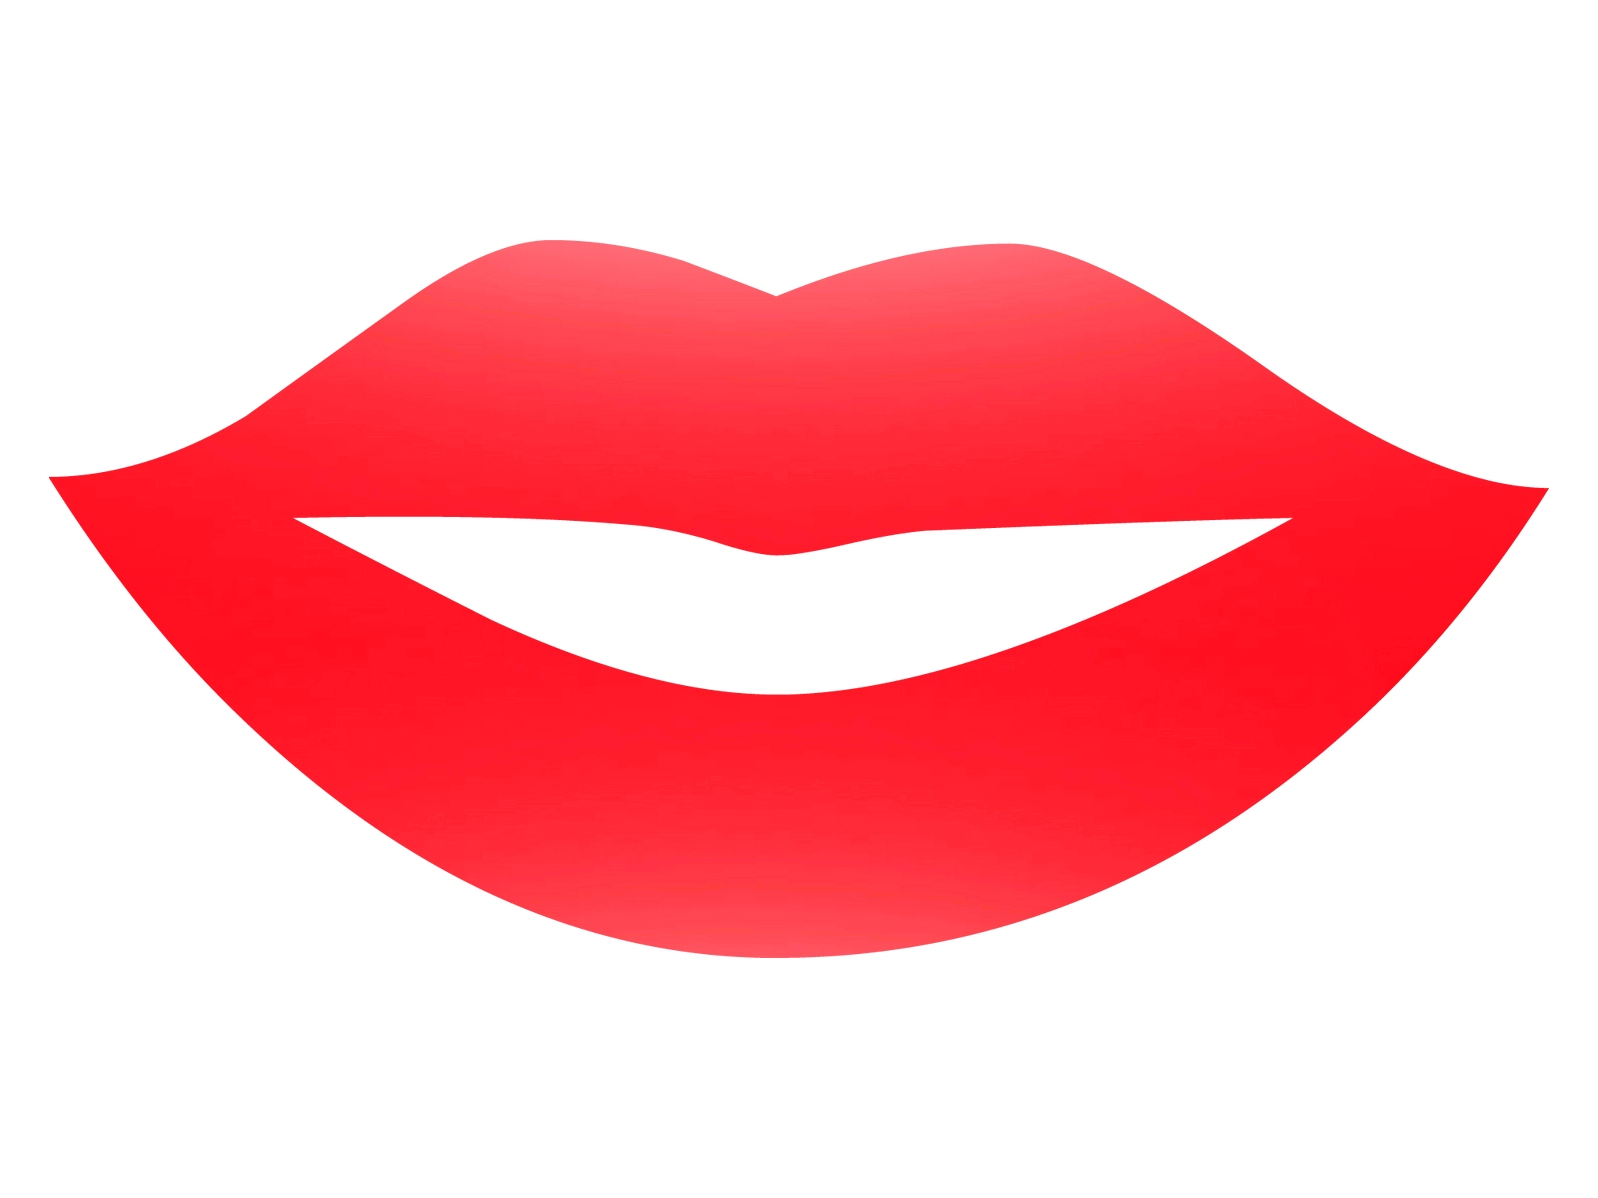 Glossy red lips clipart.